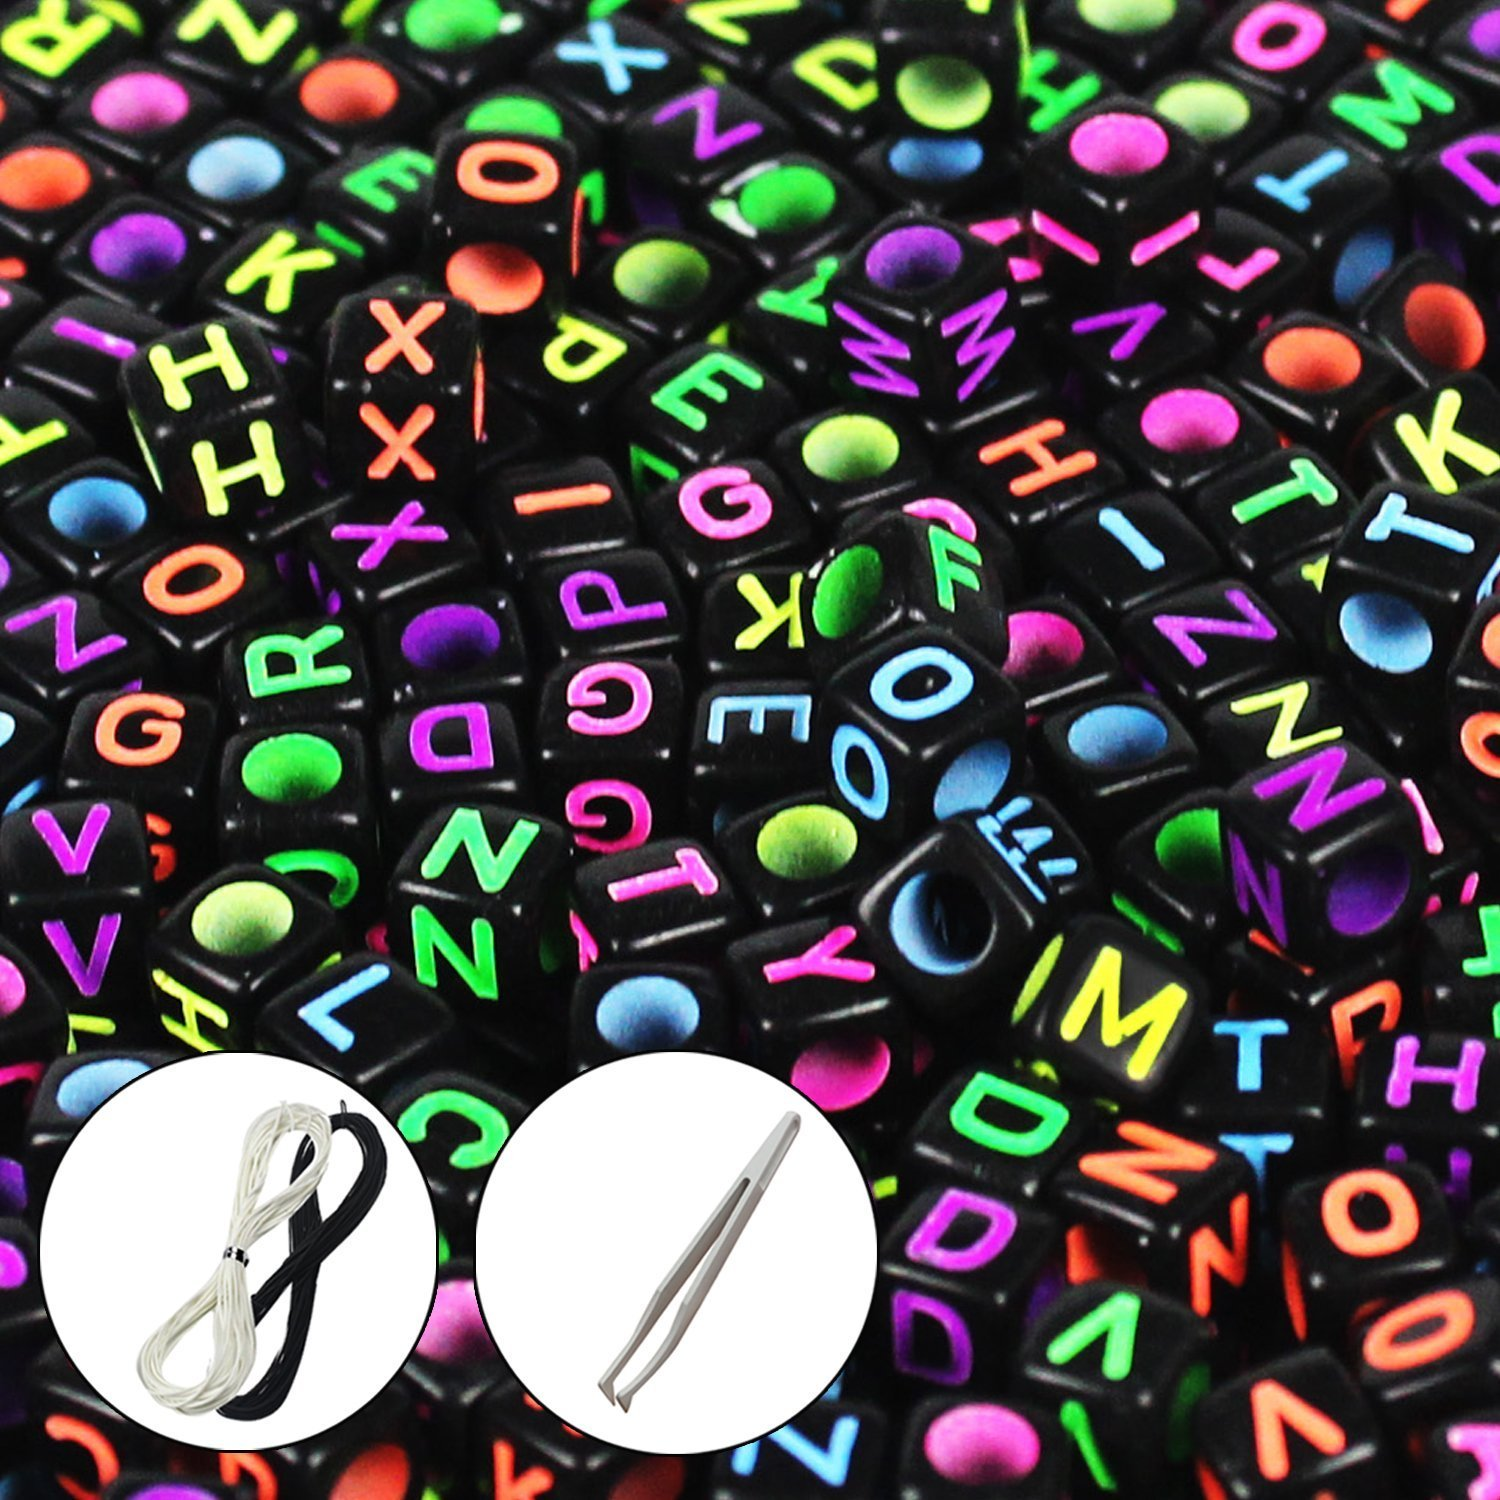 JPSOR Letter Beads Alphabet Beads Mixed Color Alphabet A-z Cube Beads for Jewelry Making for Kids DIY Bracelets, Necklaces (Black Beads with Colorful Letters) Goodlucky